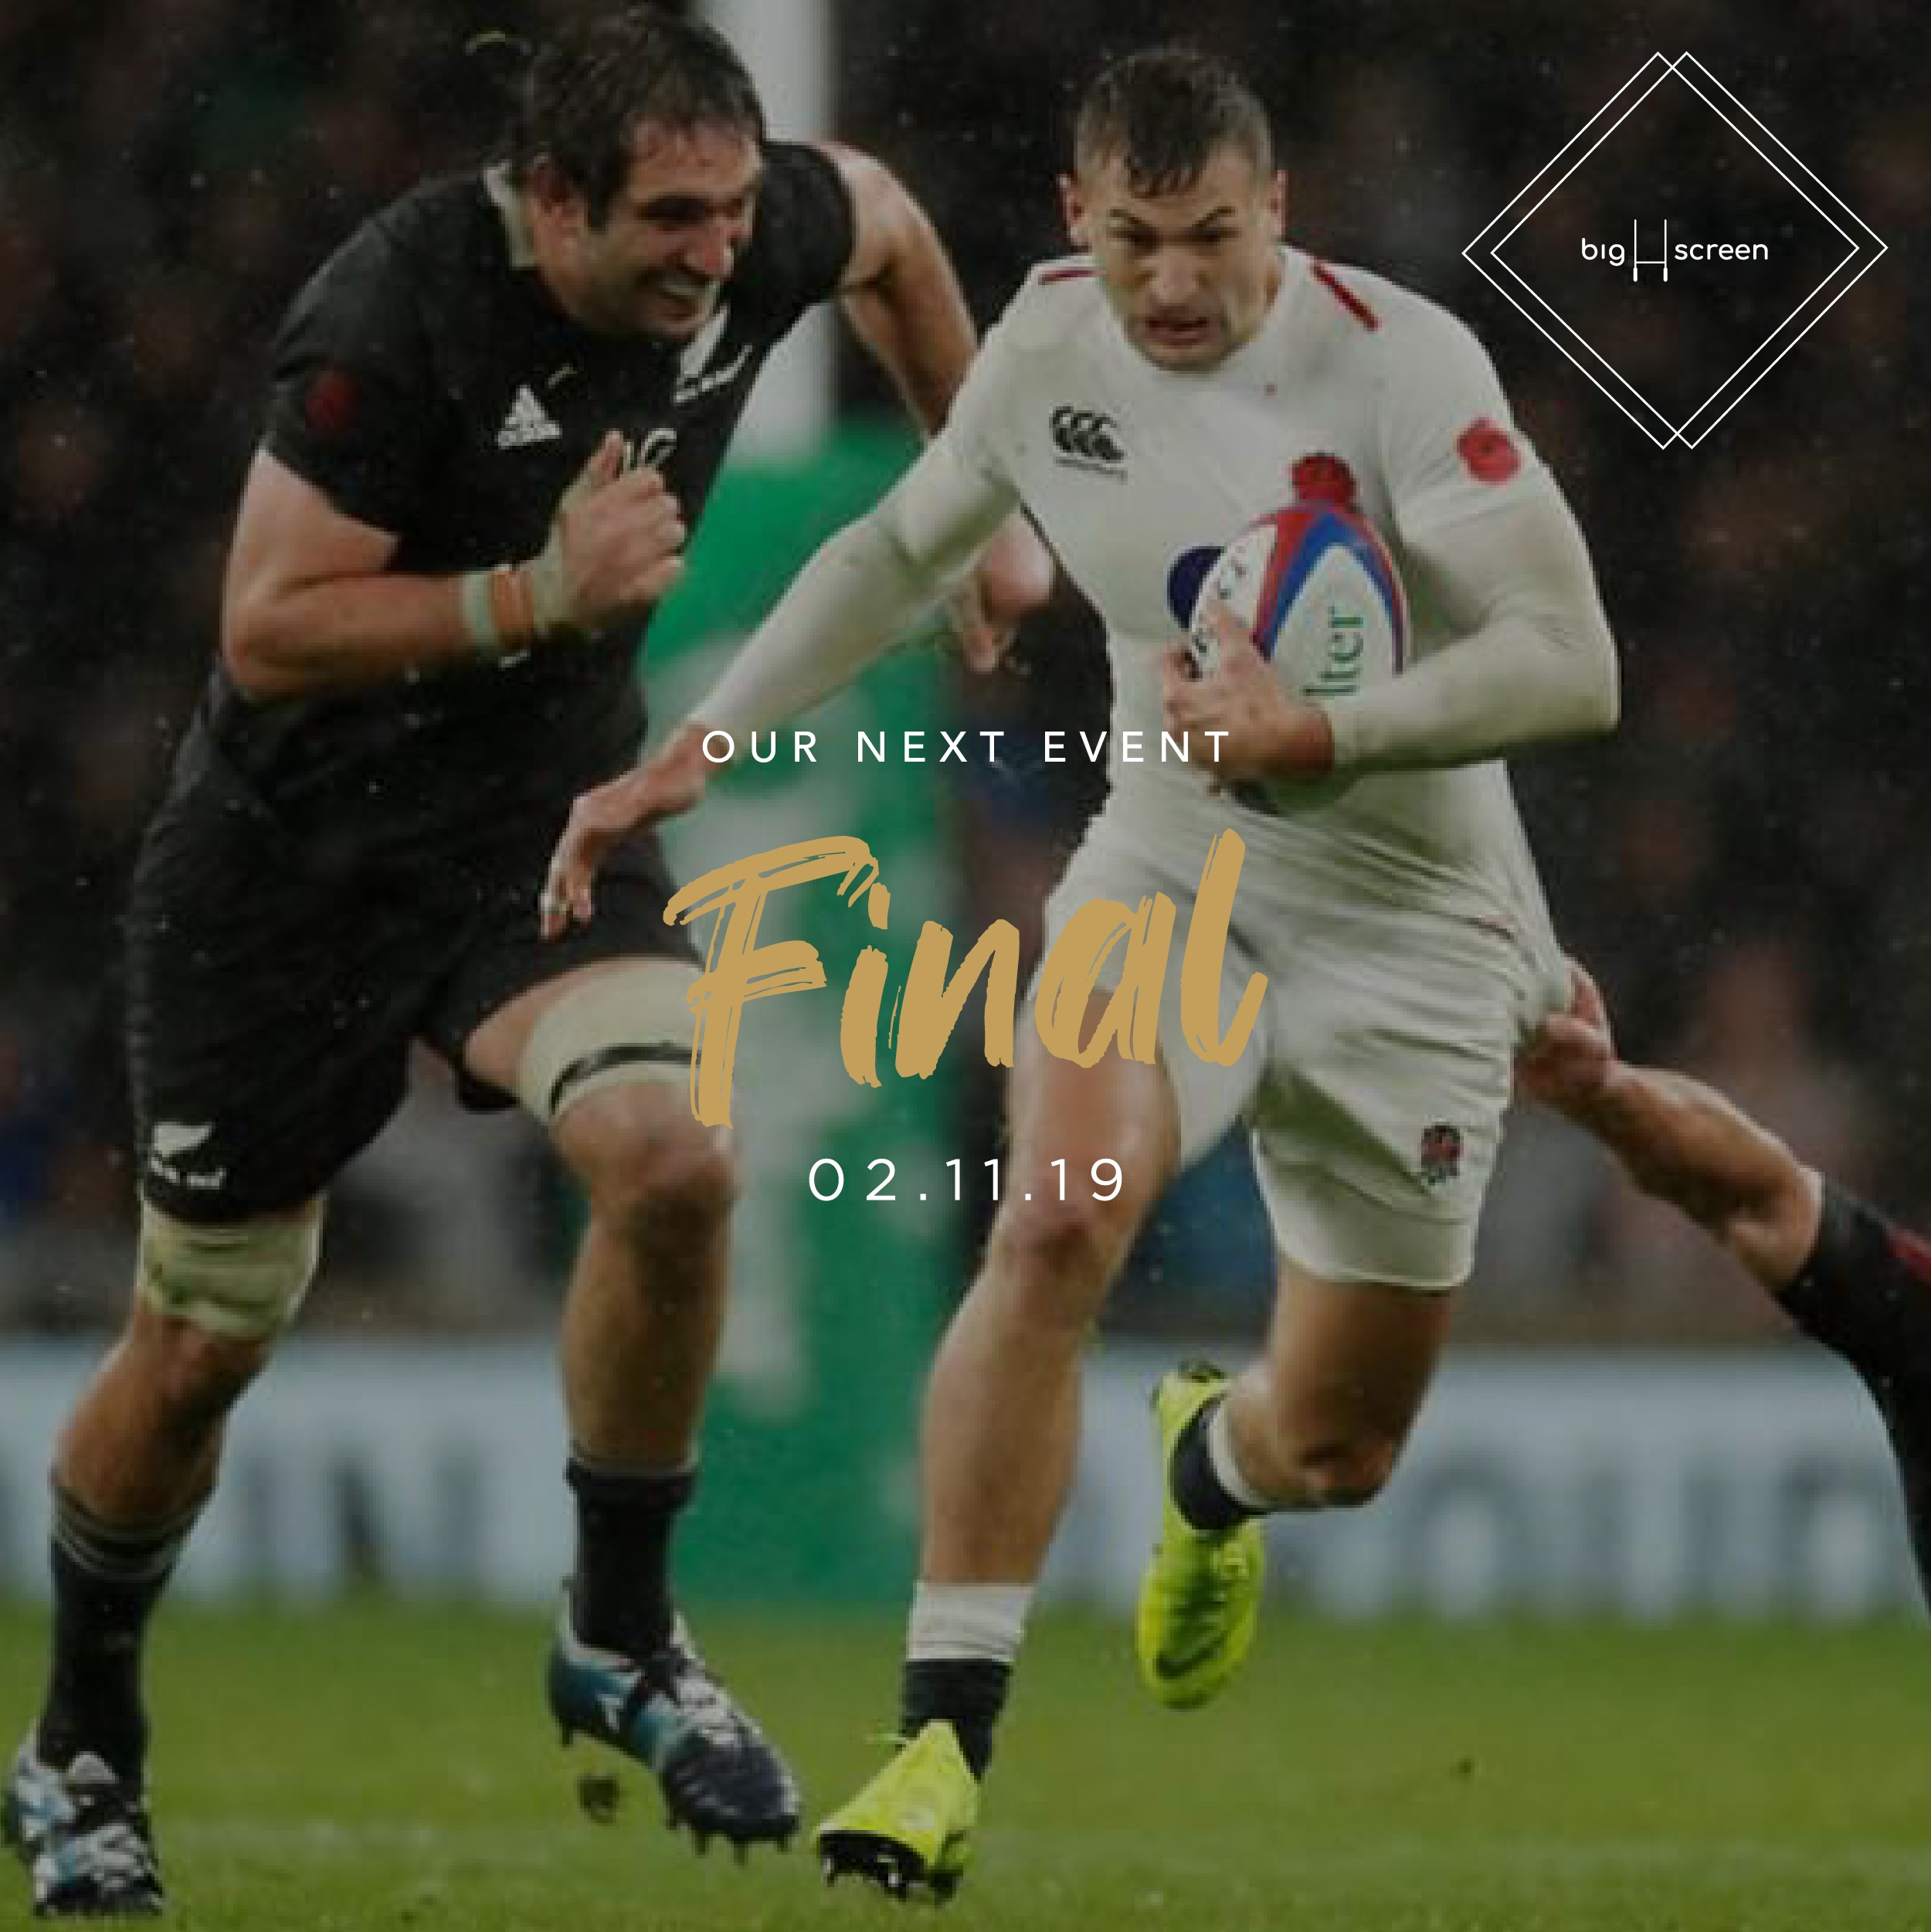 Rugby World Cup Finals I big screen 2019